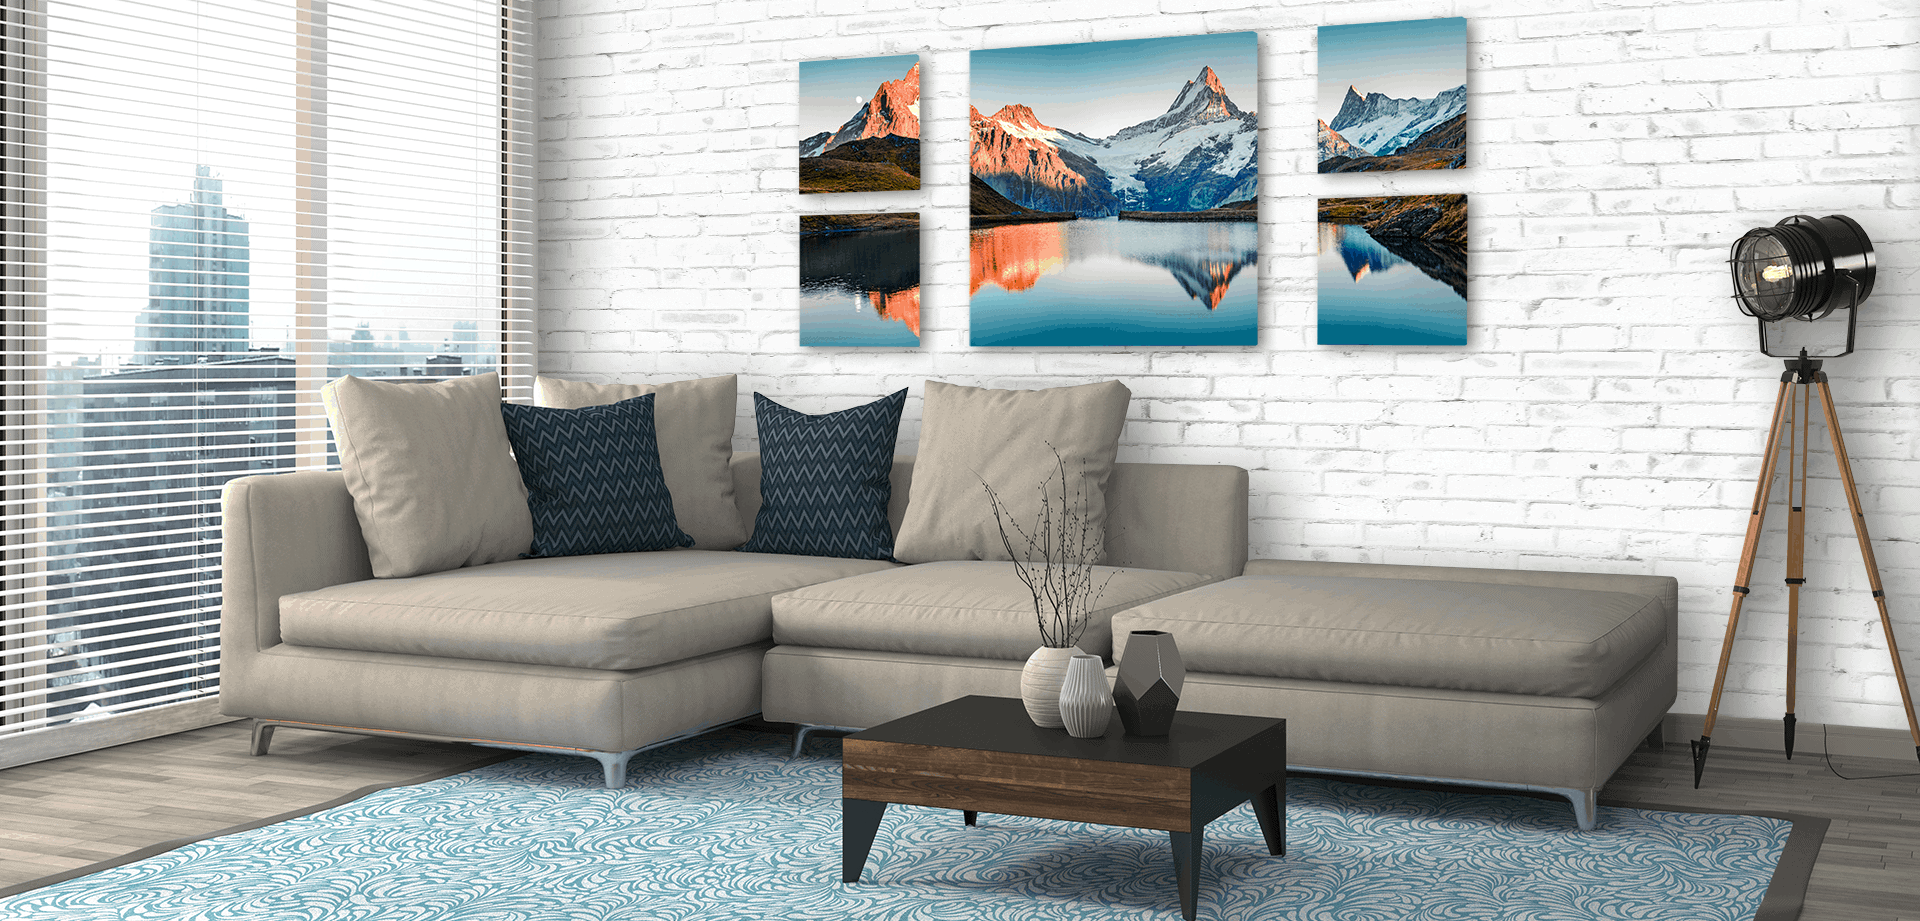 Large Canvas Pictures for Living Room